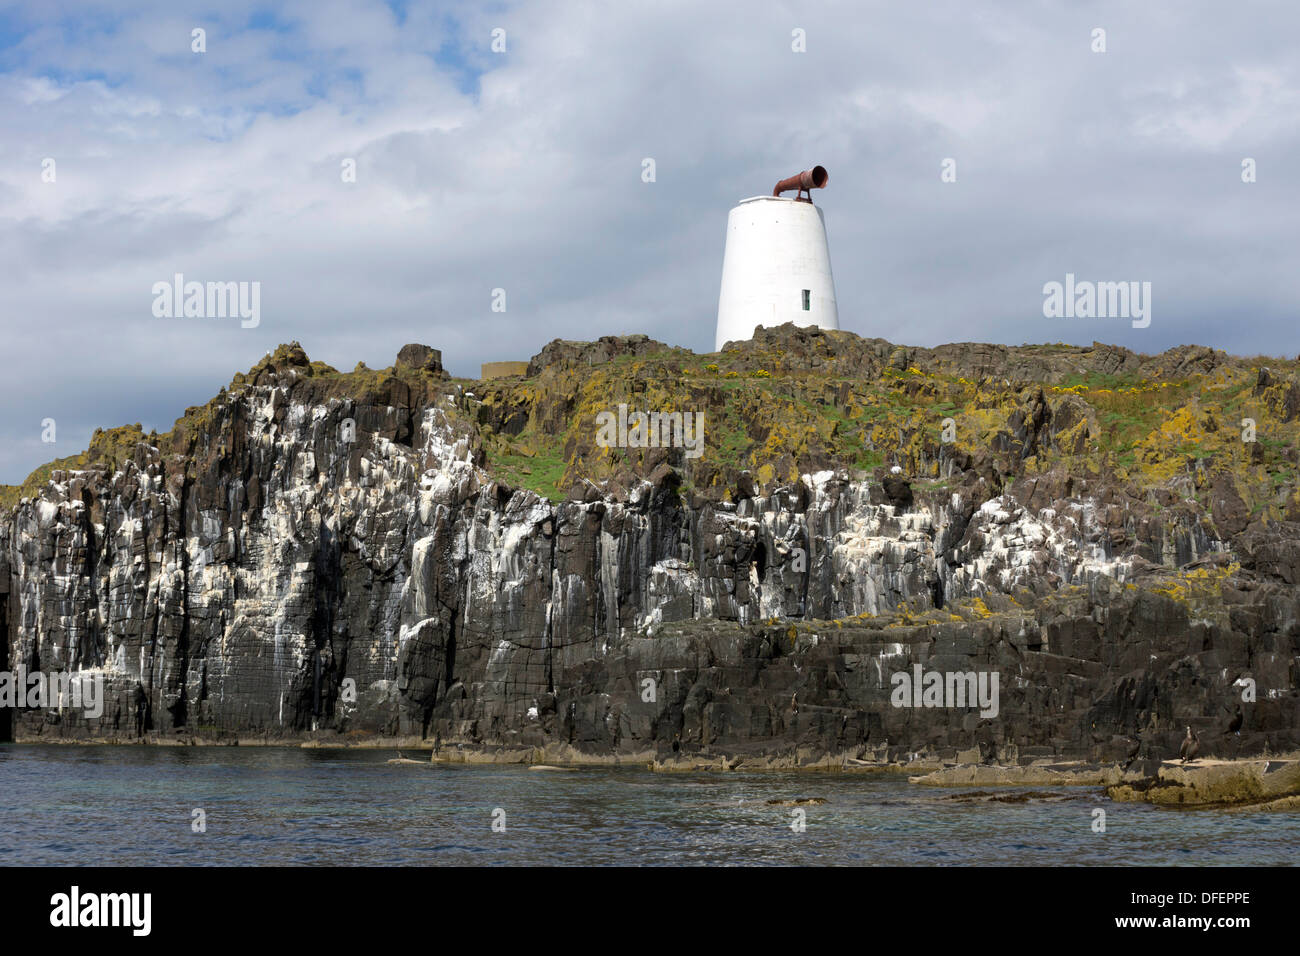 Fog horn on the Isle of May in the Firth of Forth, Scotland - Stock Image